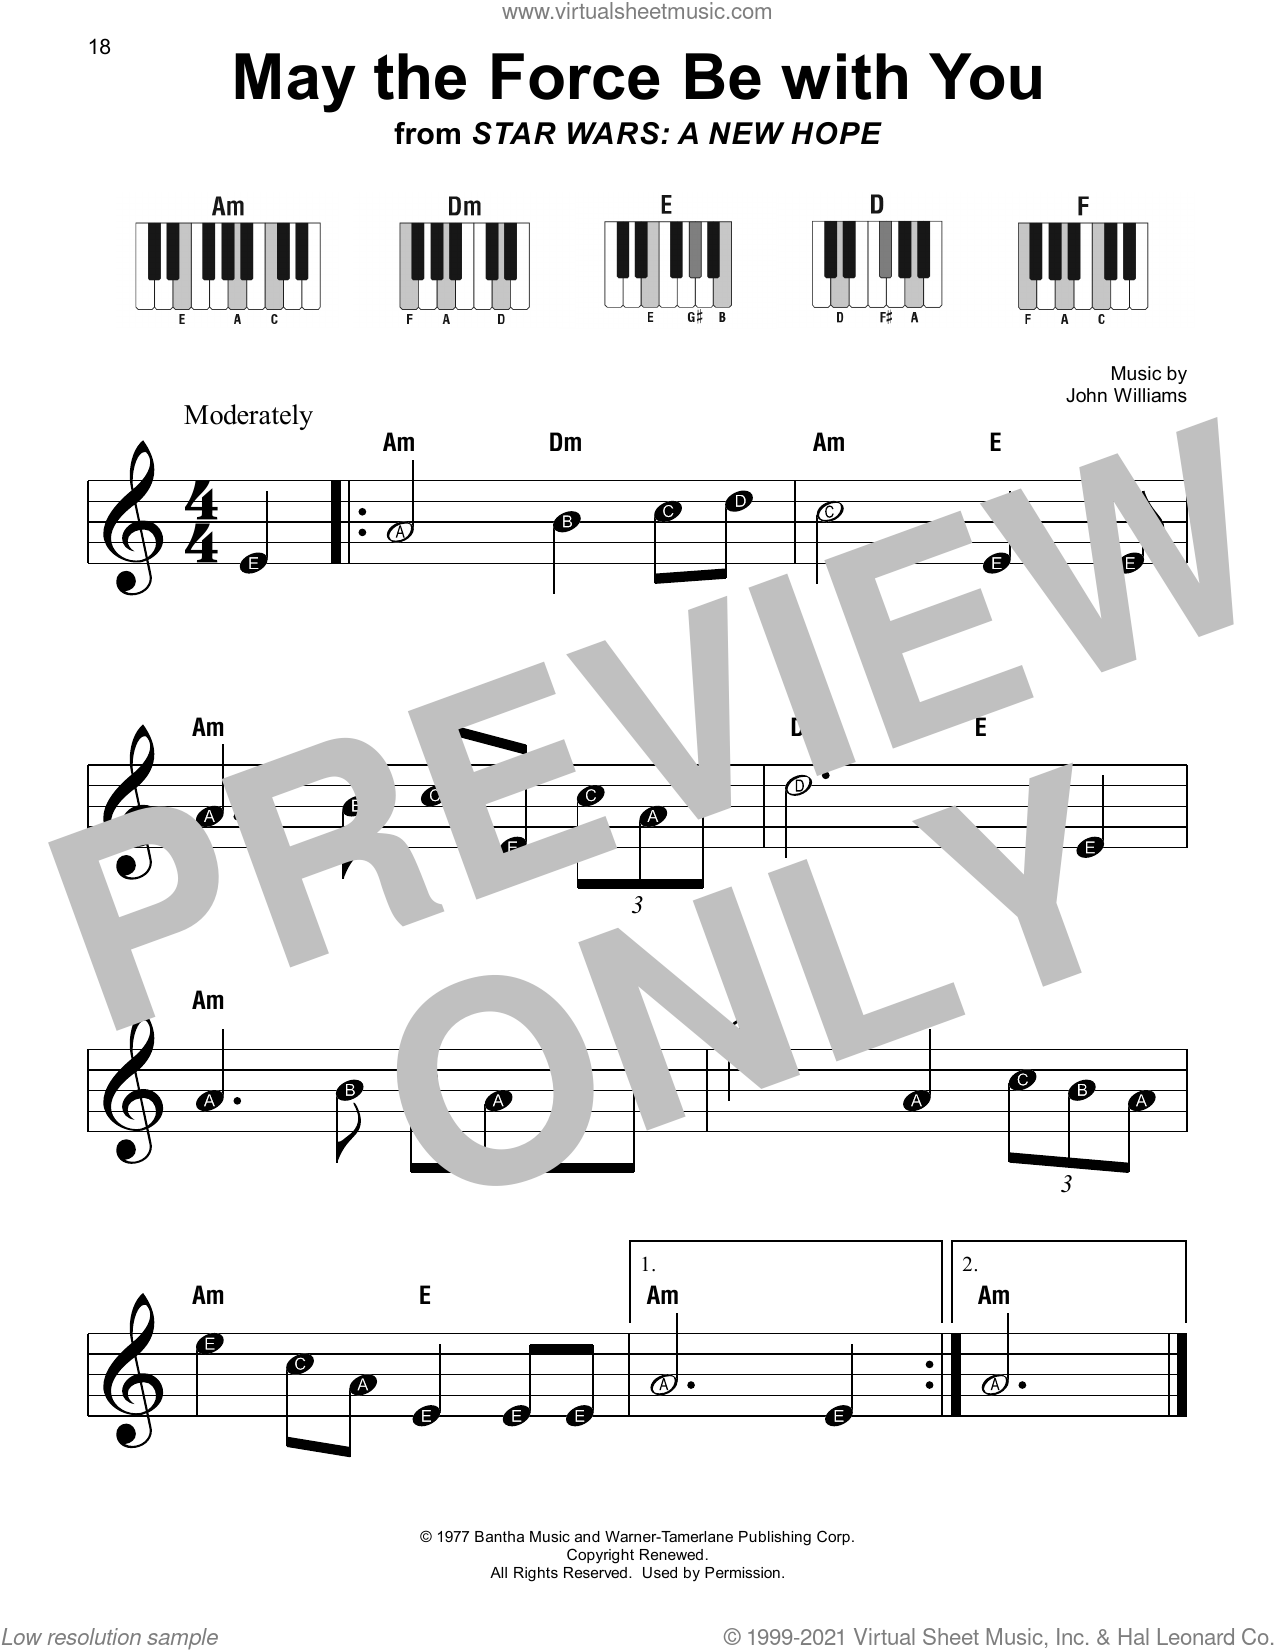 May The Force Be With You (from Star Wars: A New Hope) sheet music for piano solo by John Williams, beginner skill level